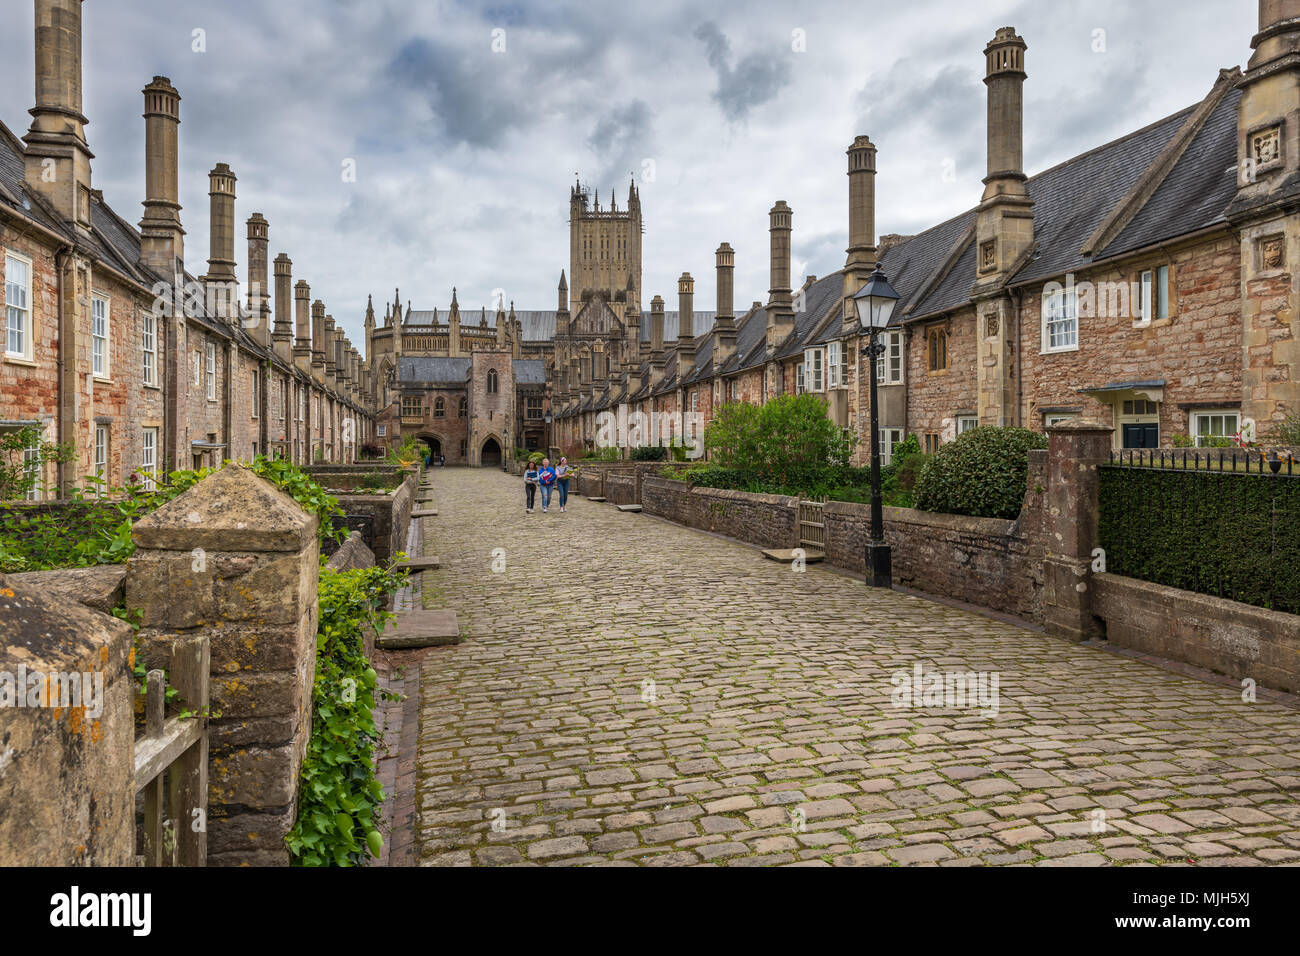 Vicars' Close in Wells Somerset, viewed looking towards the Chain Gate, is claimed to be the oldest purely residential street with original buildings  - Stock Image